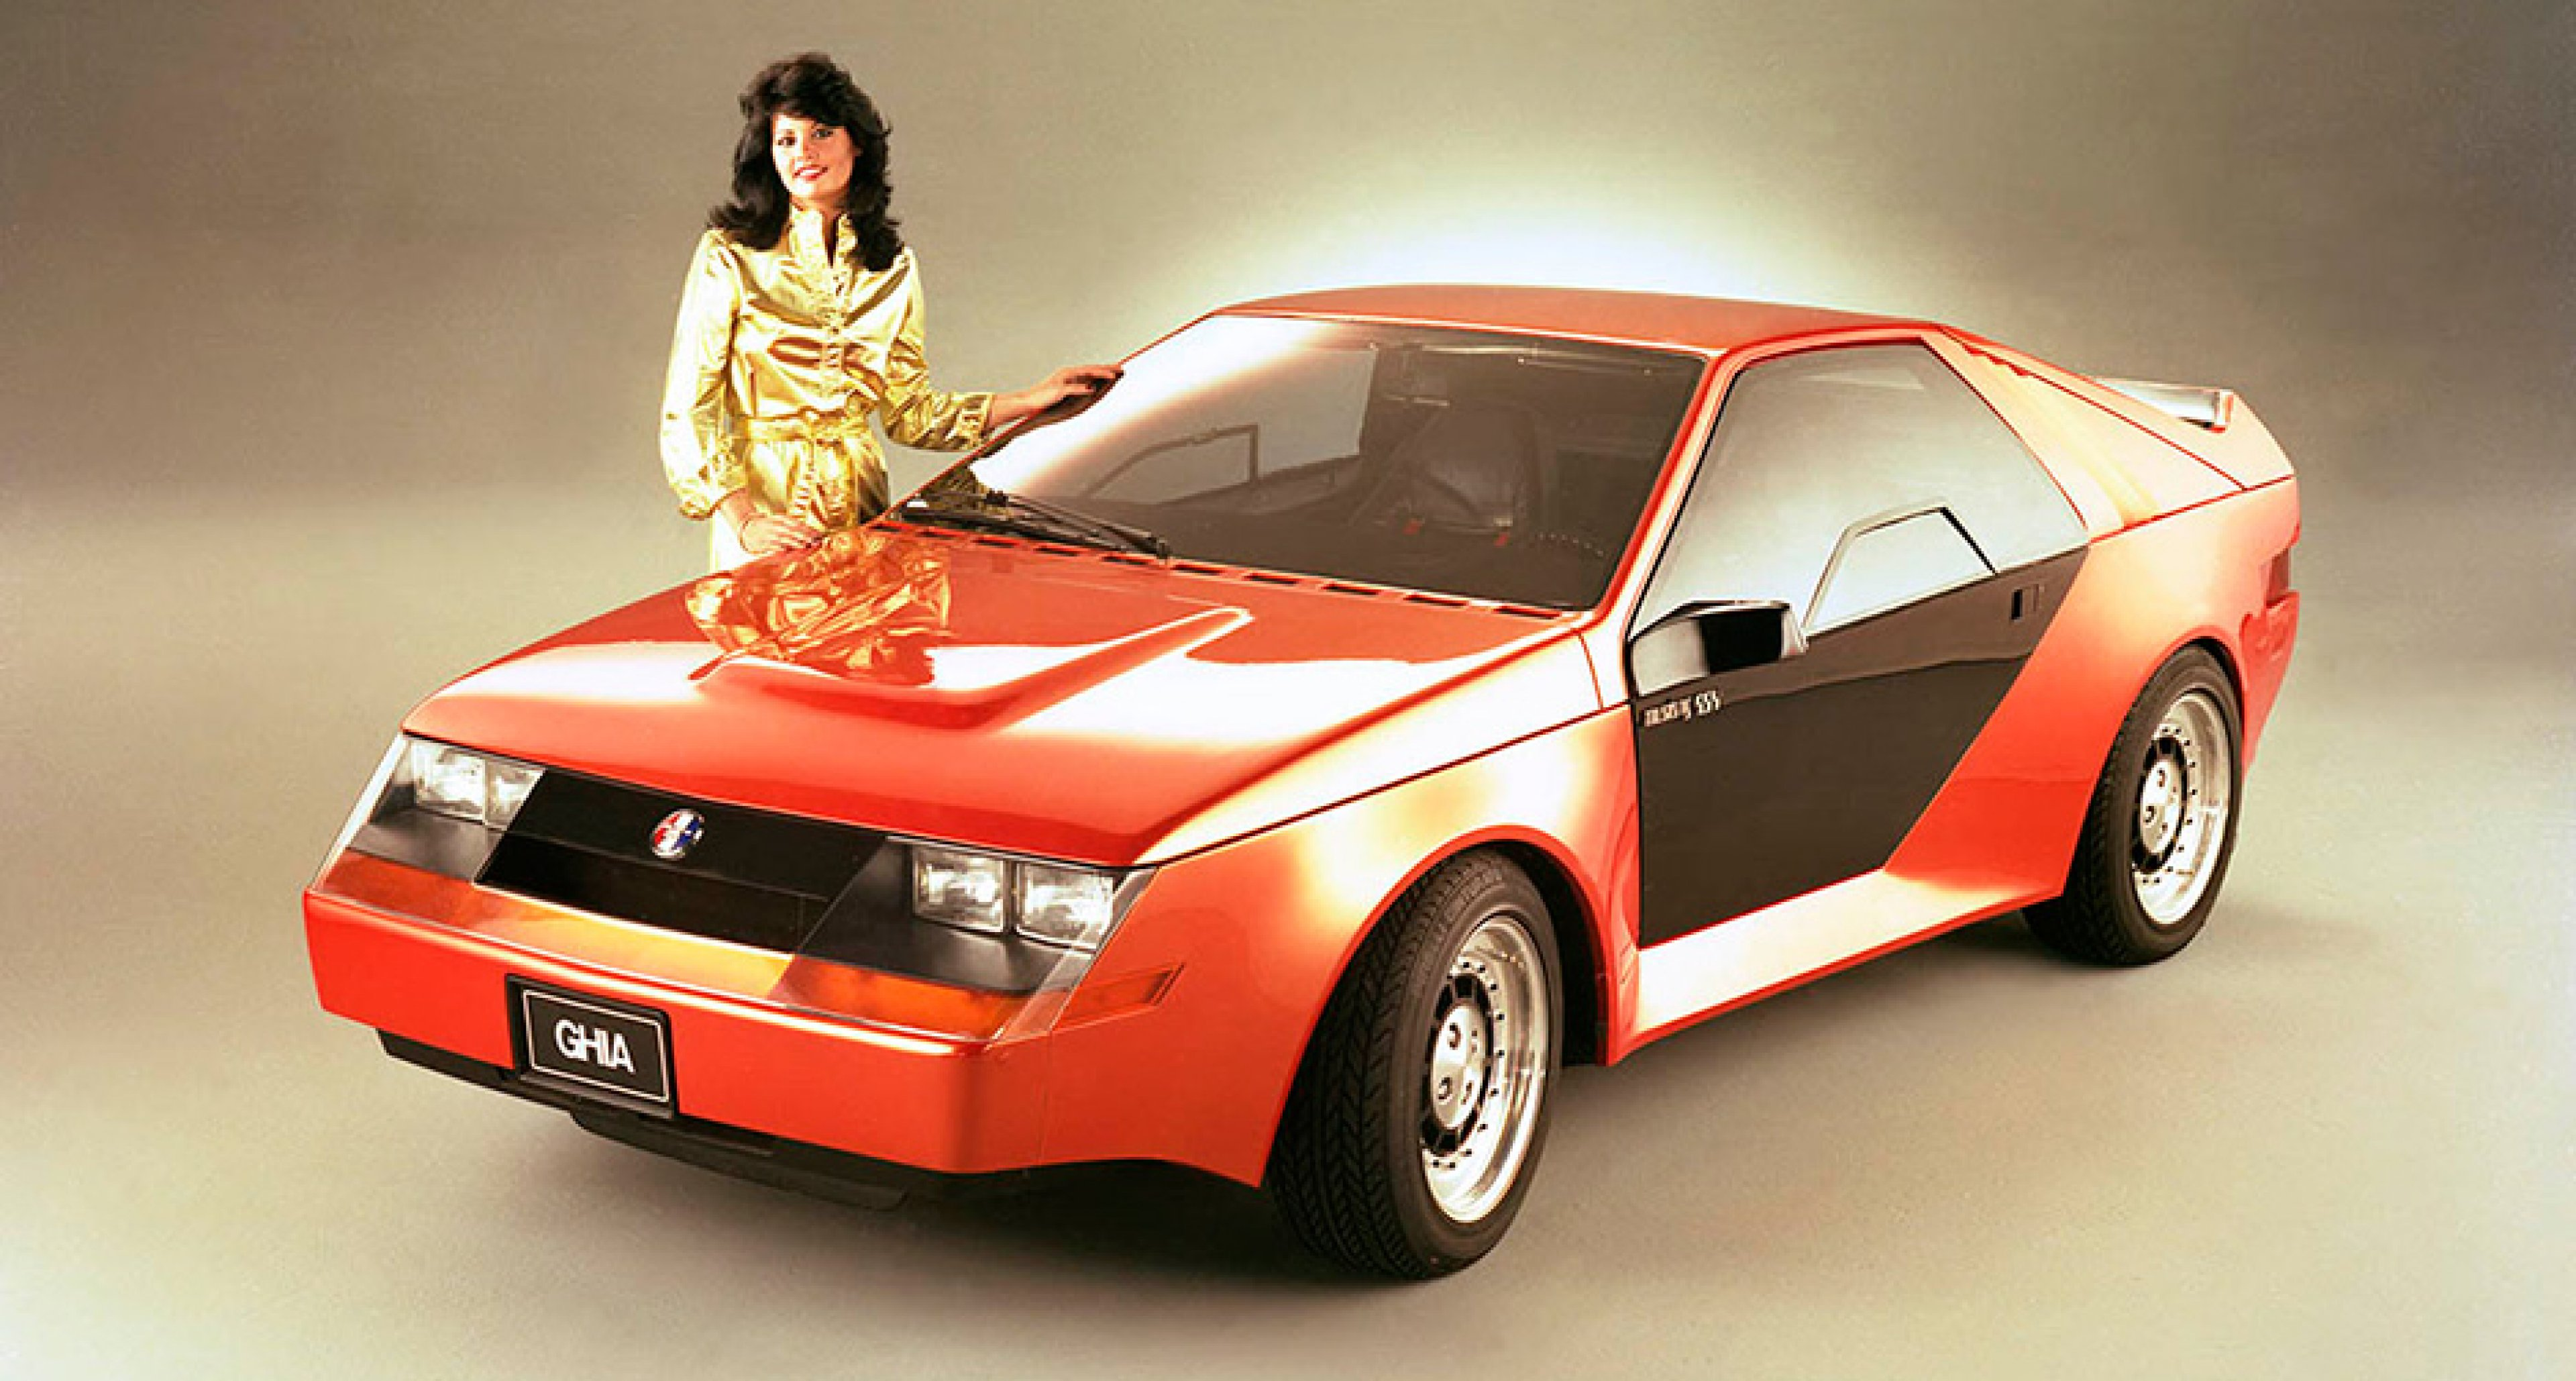 1980 Mustang RSX Concept, a rally-ready Fox-body penned by Ghia